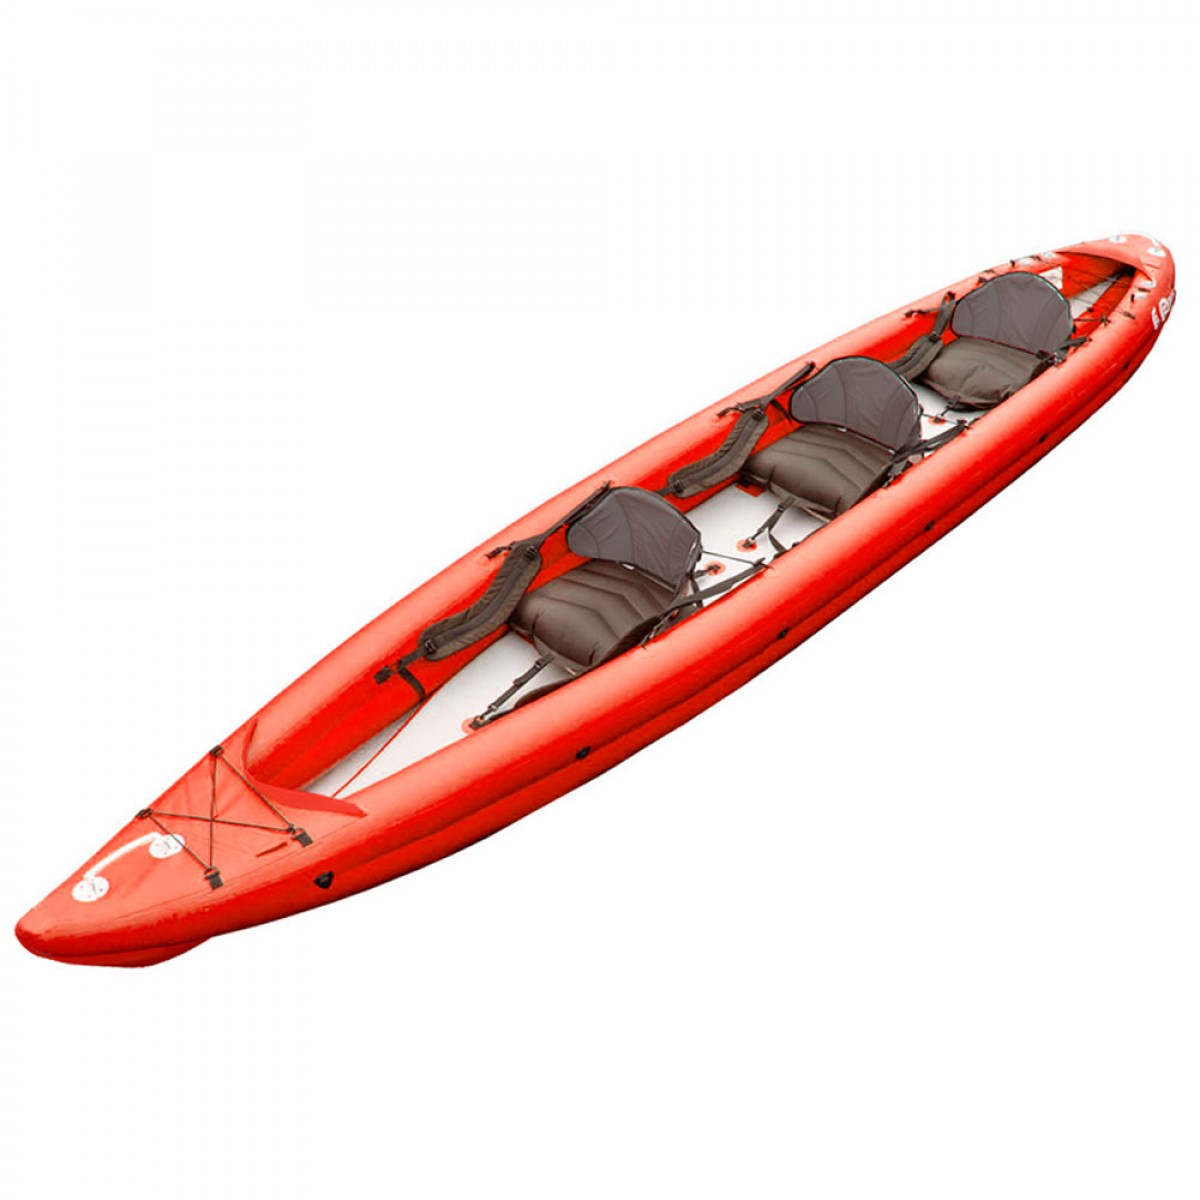 Spark-520 Kayak with Inflatable Frame, 3 seats image